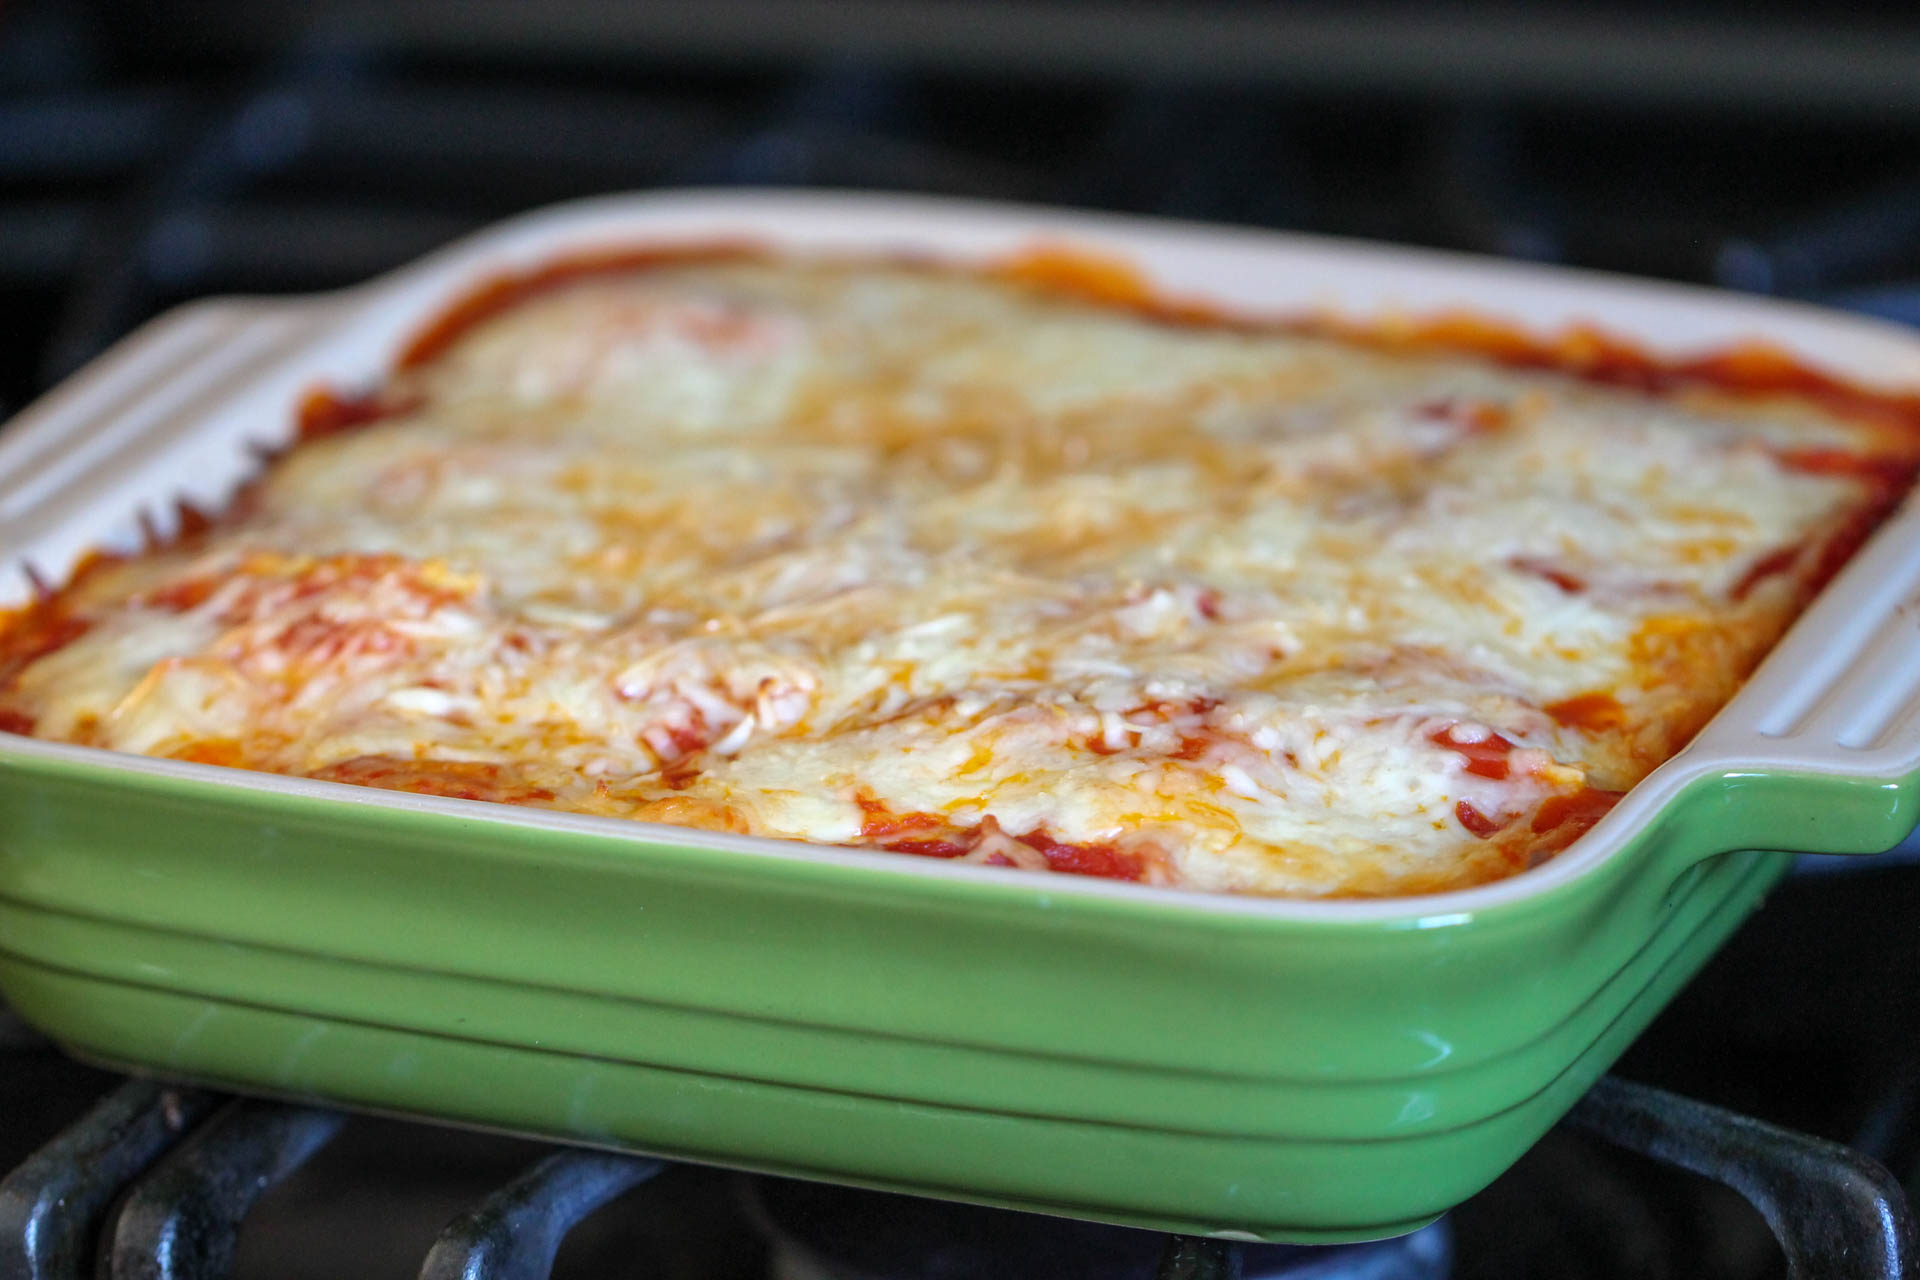 Baked ravioli casserole in oven